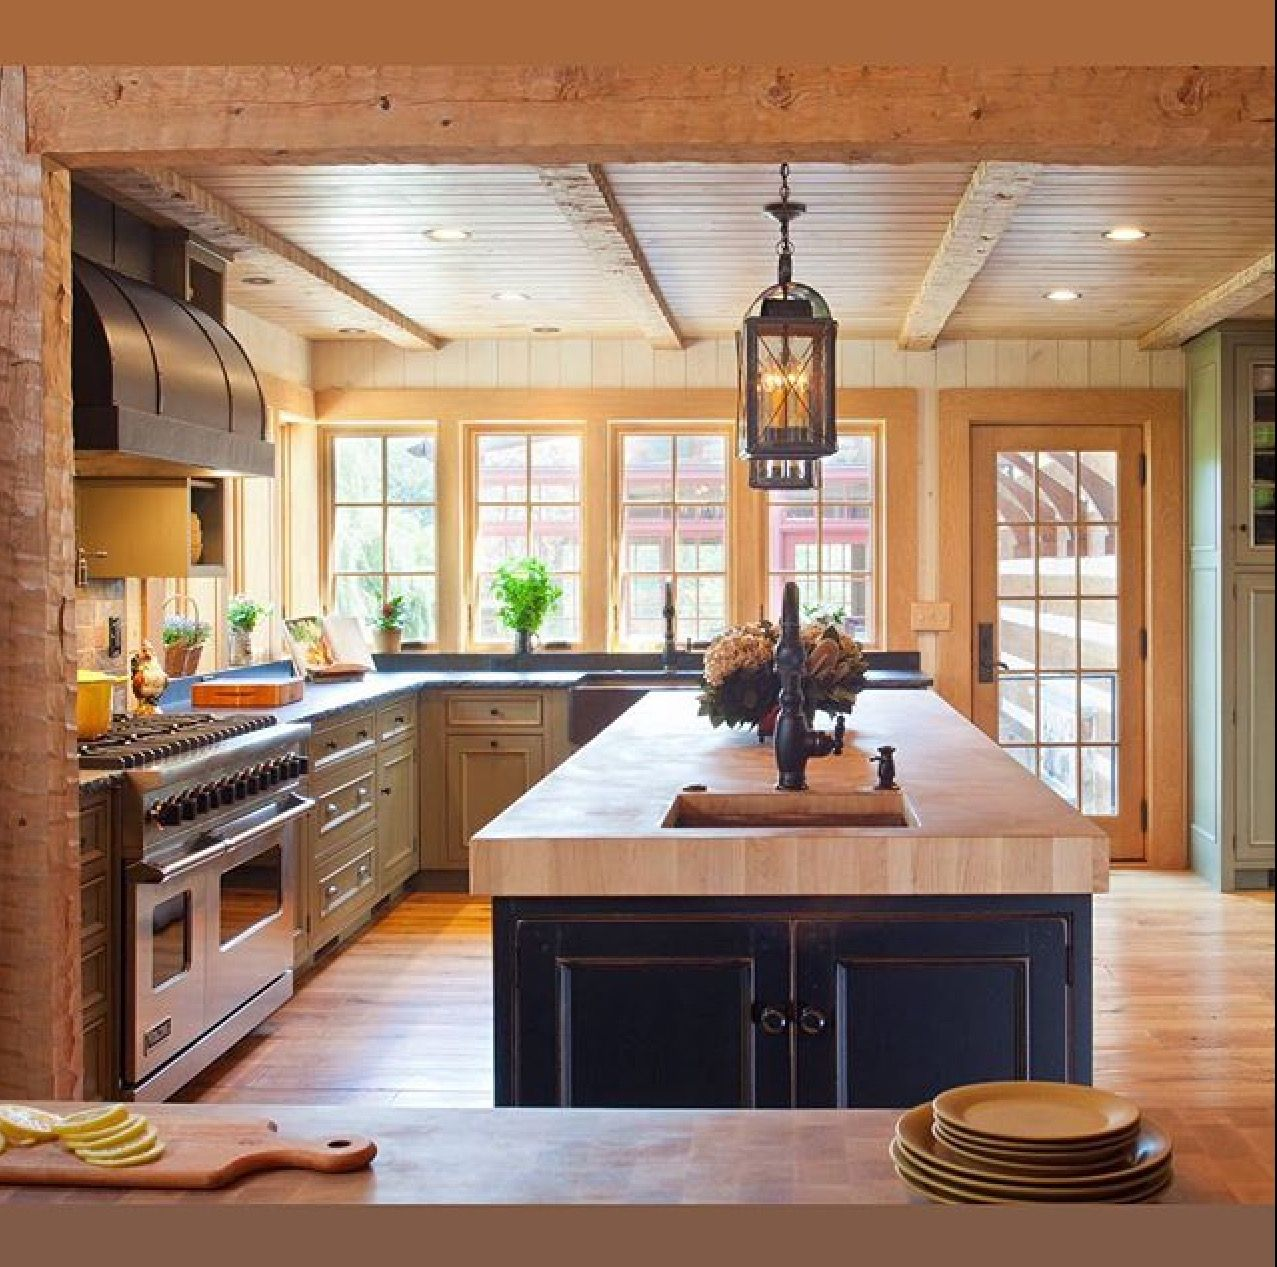 Kitchen Cabinets Colorado Springs: Pin By Kelly Mack On Kitchens